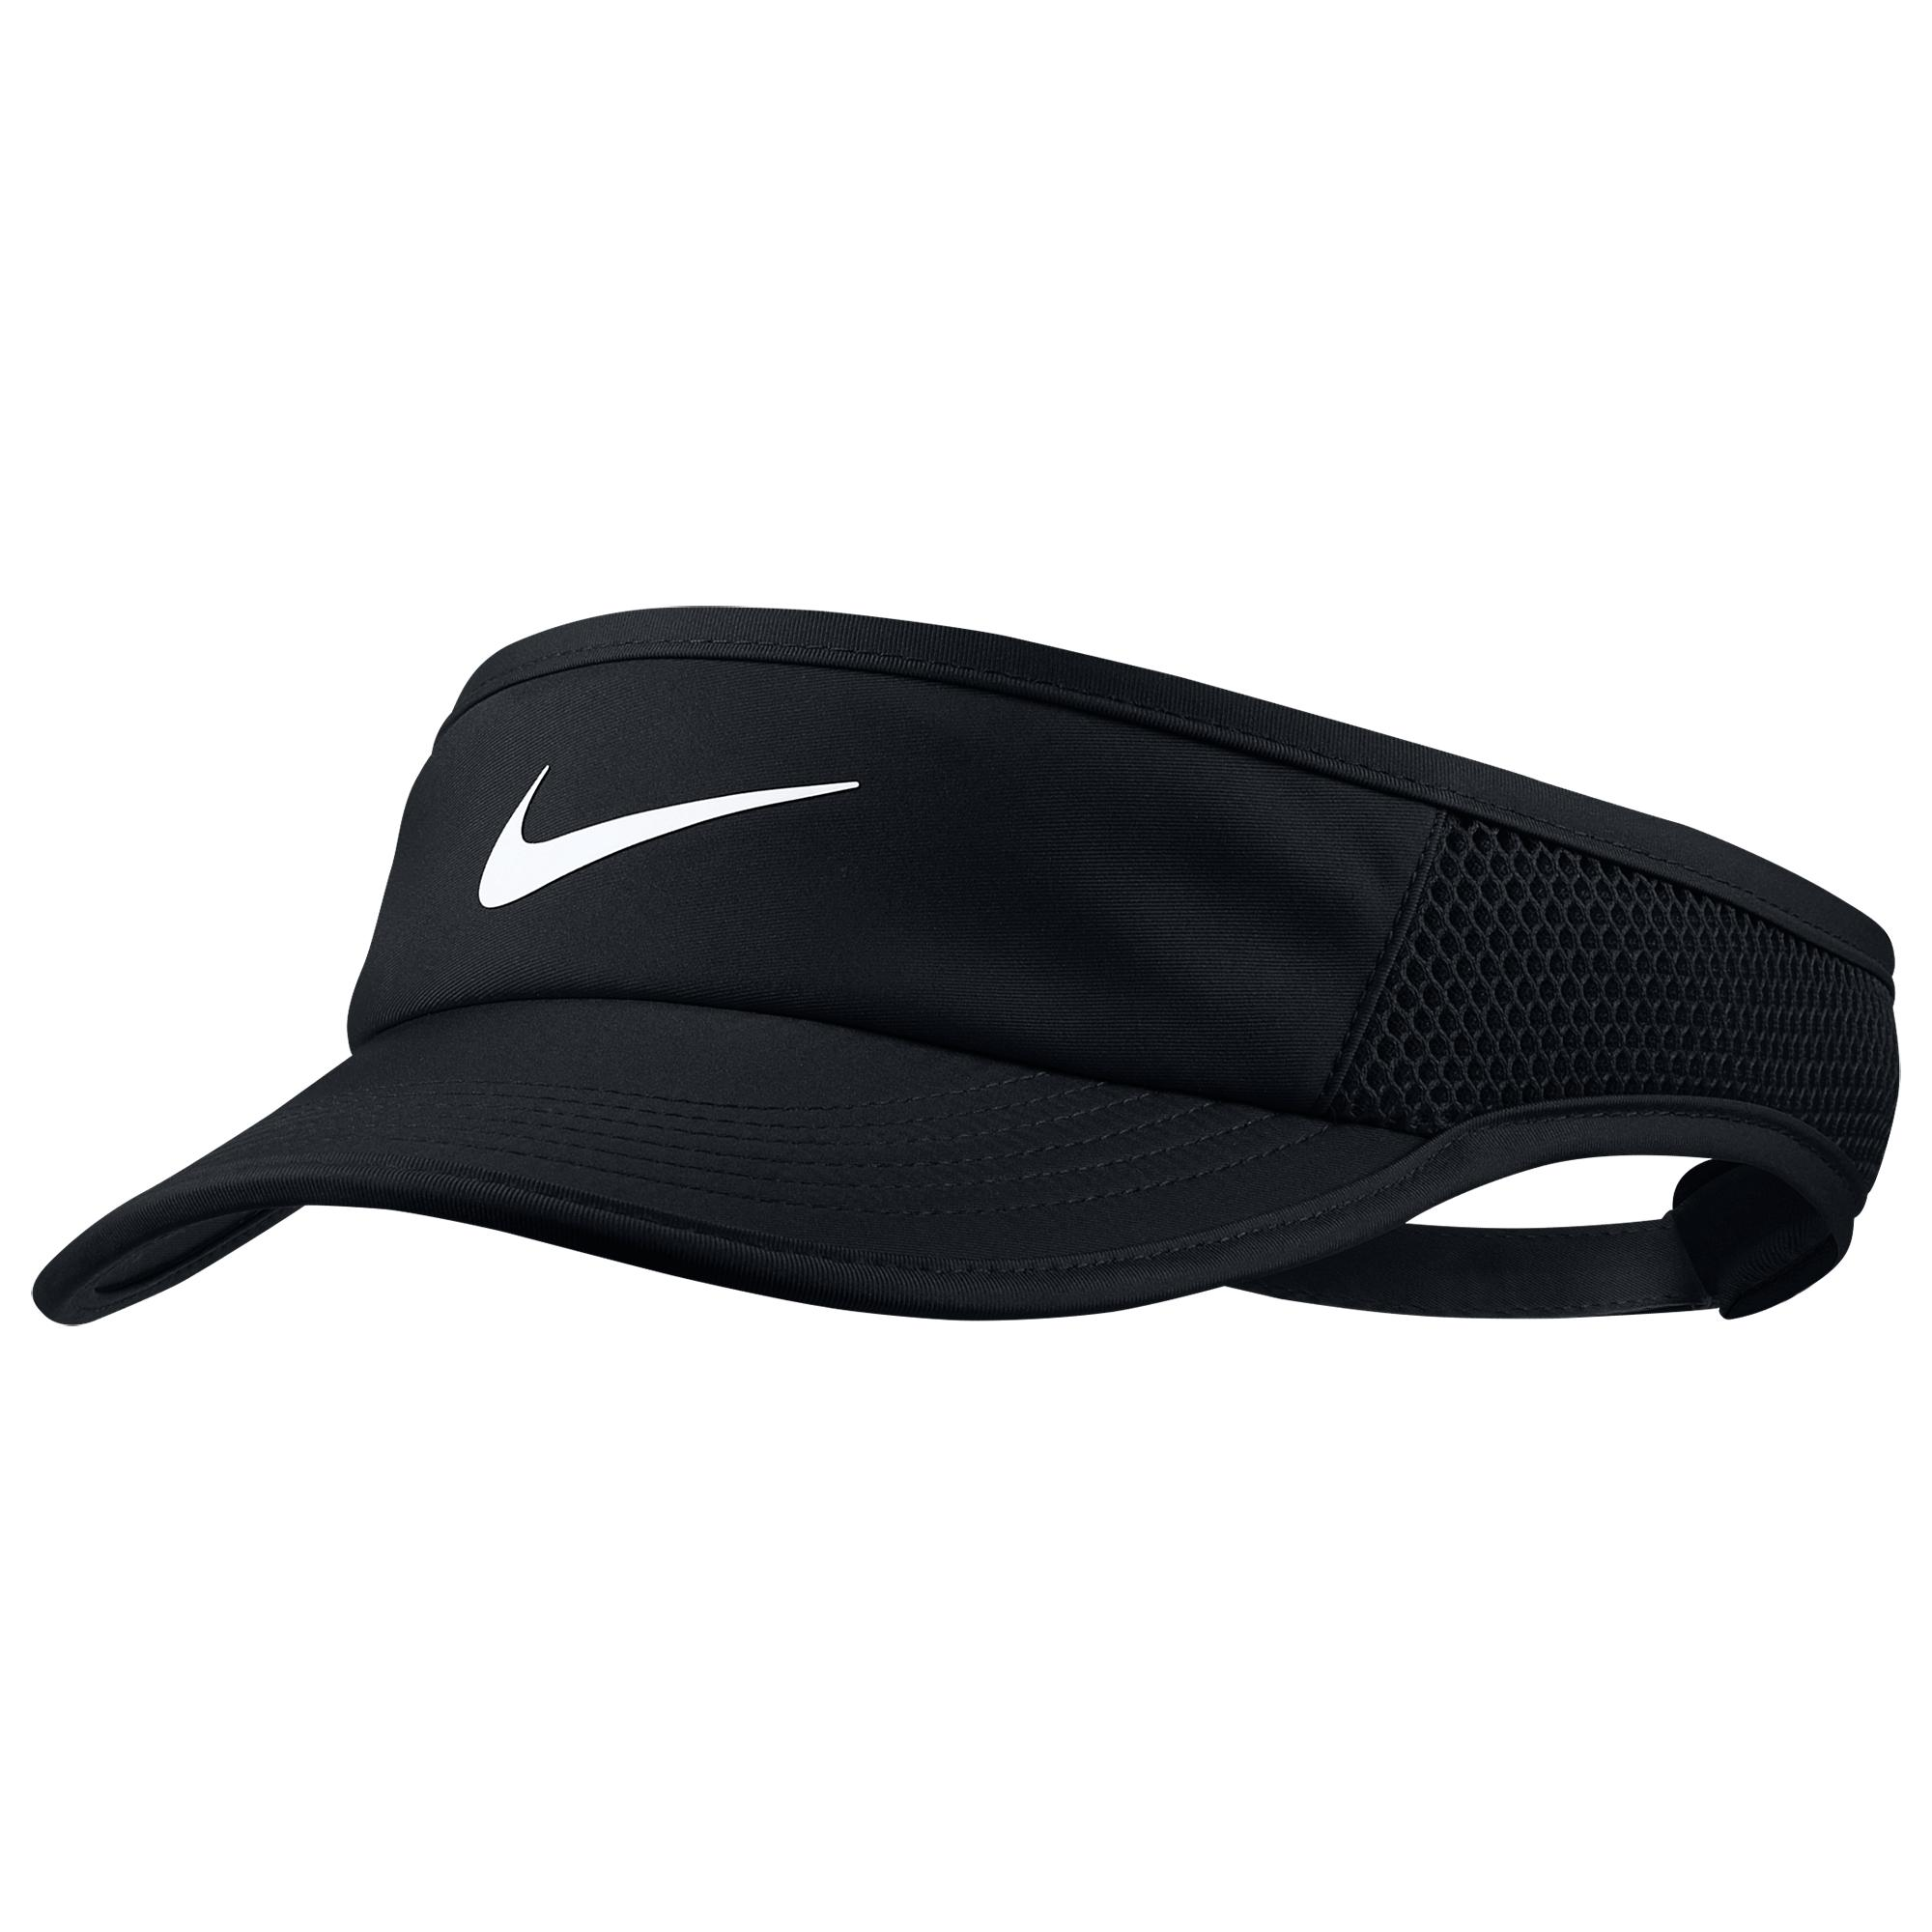 f7a98fedcb5 Lyst - Nike Dri-fit Featherlight Visor in Black